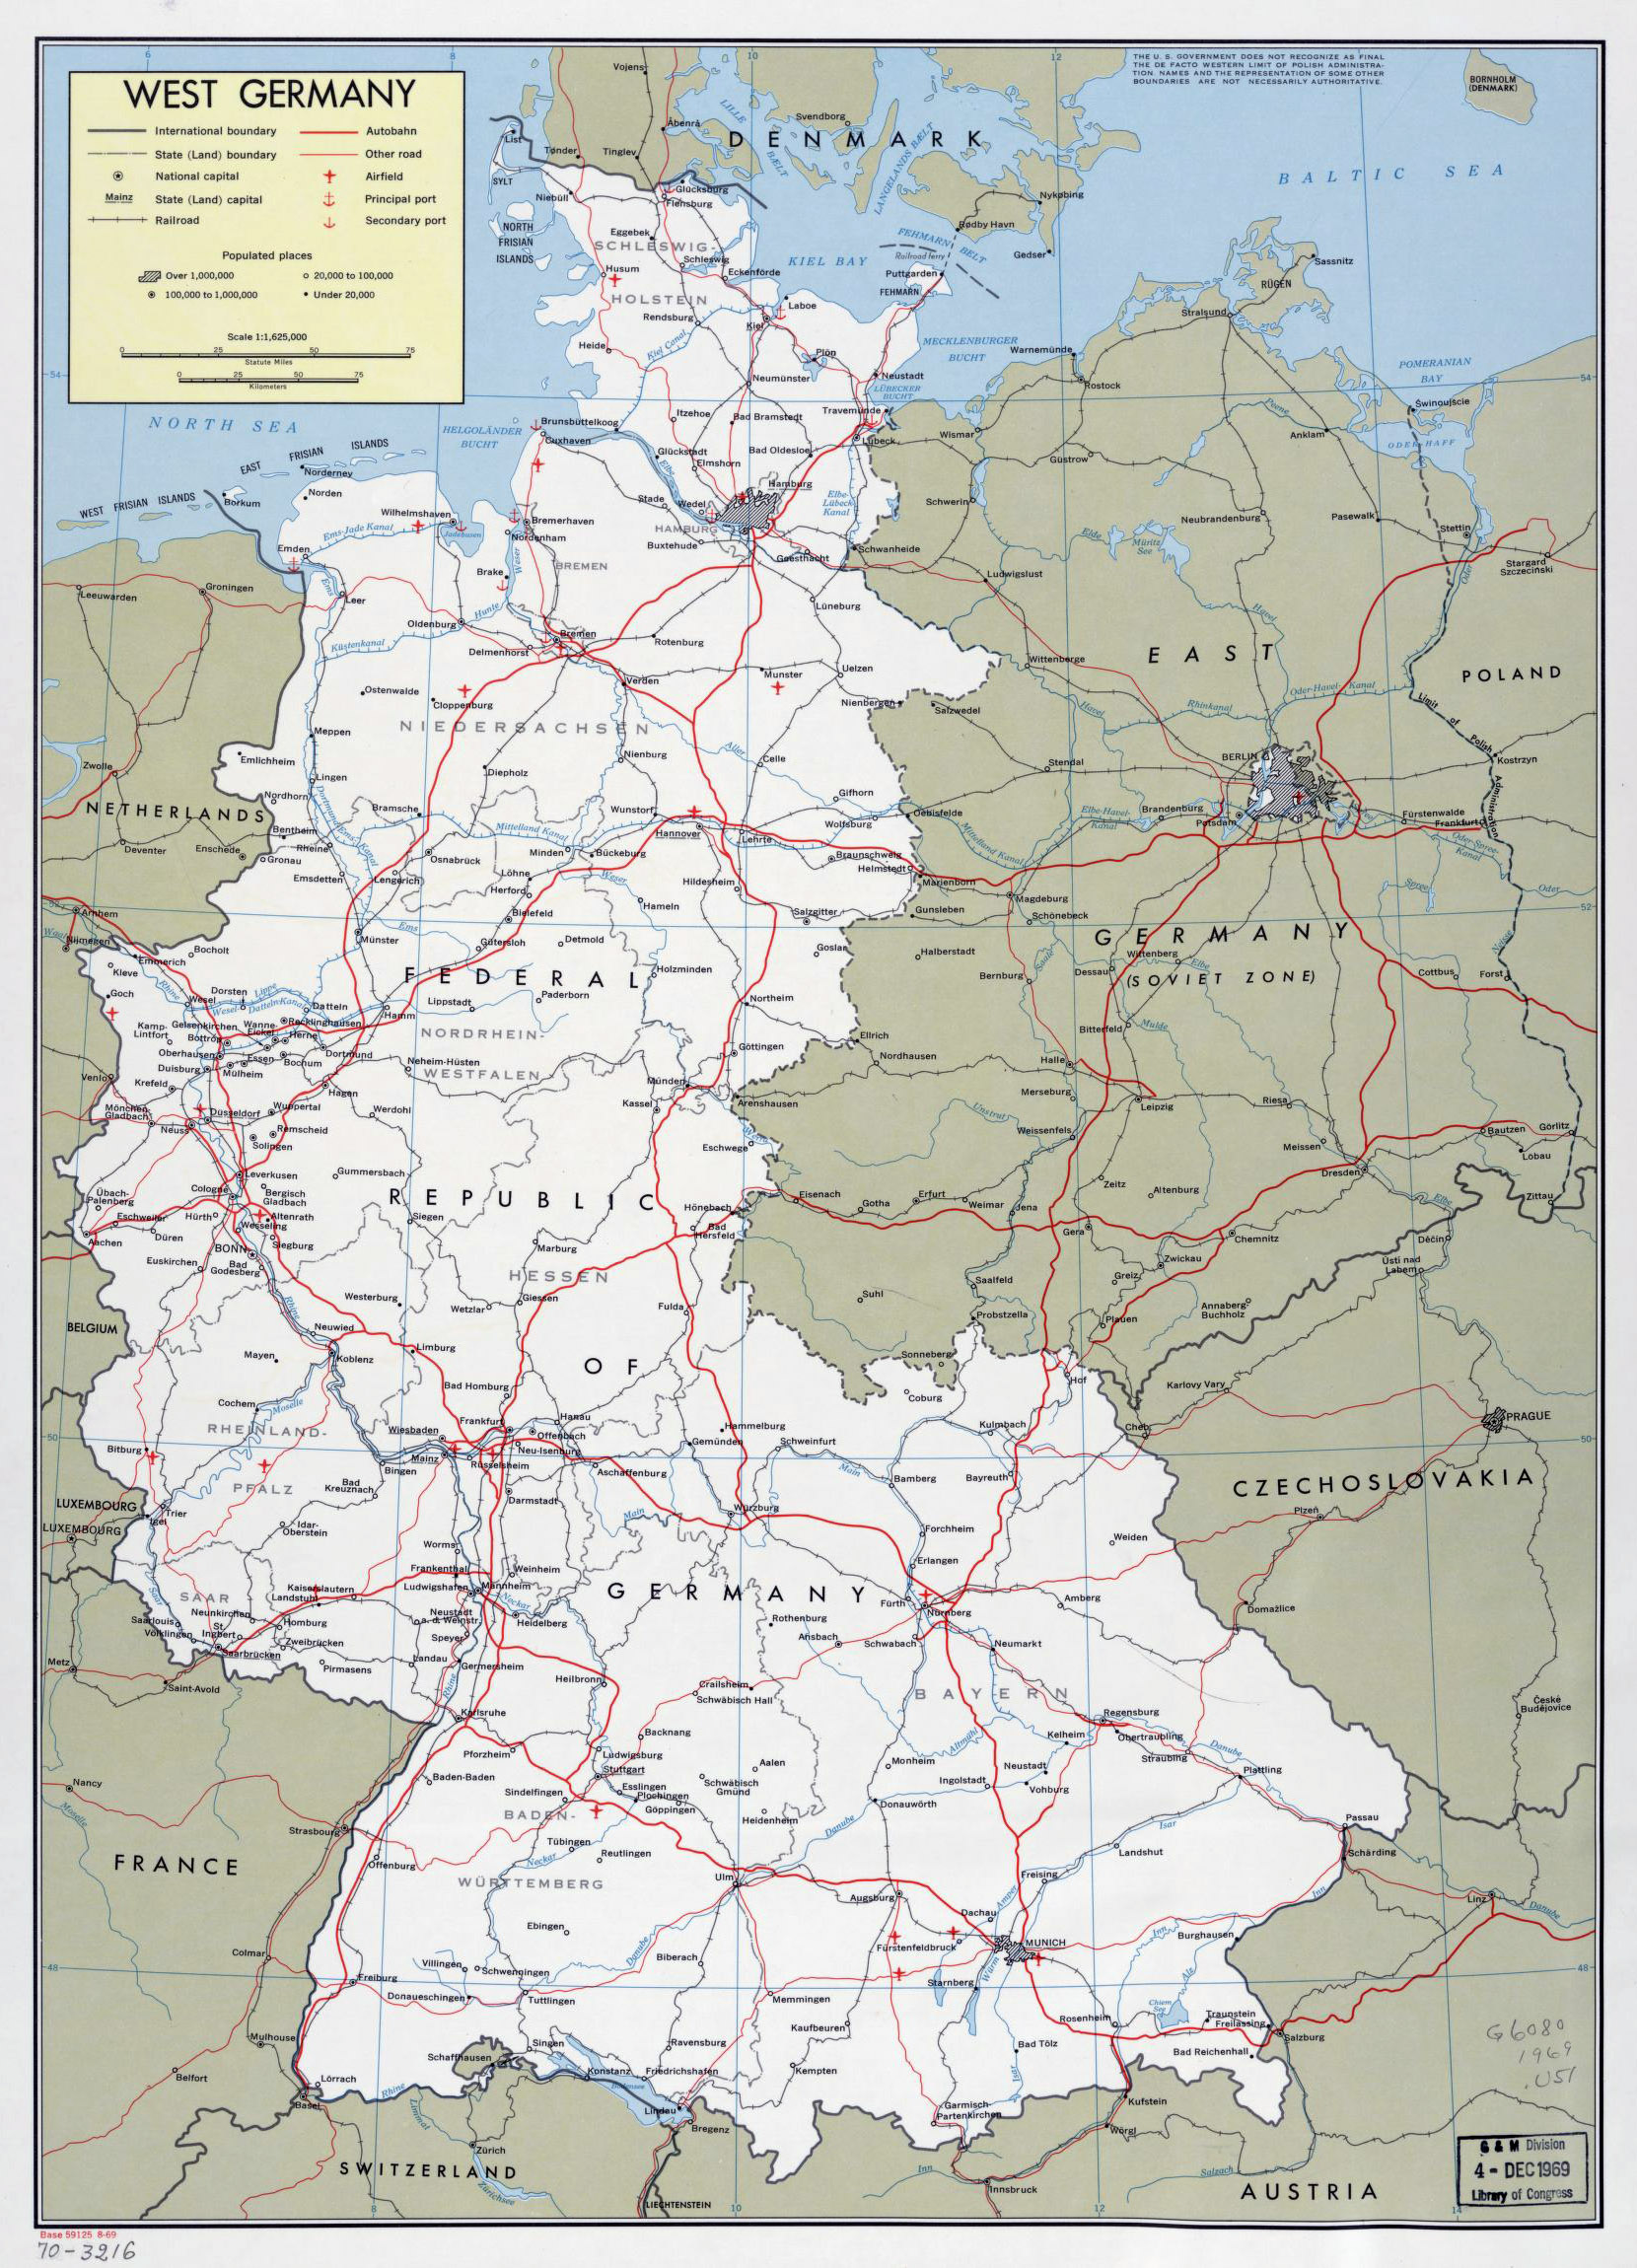 Large political and administrative map of West Germany with roads